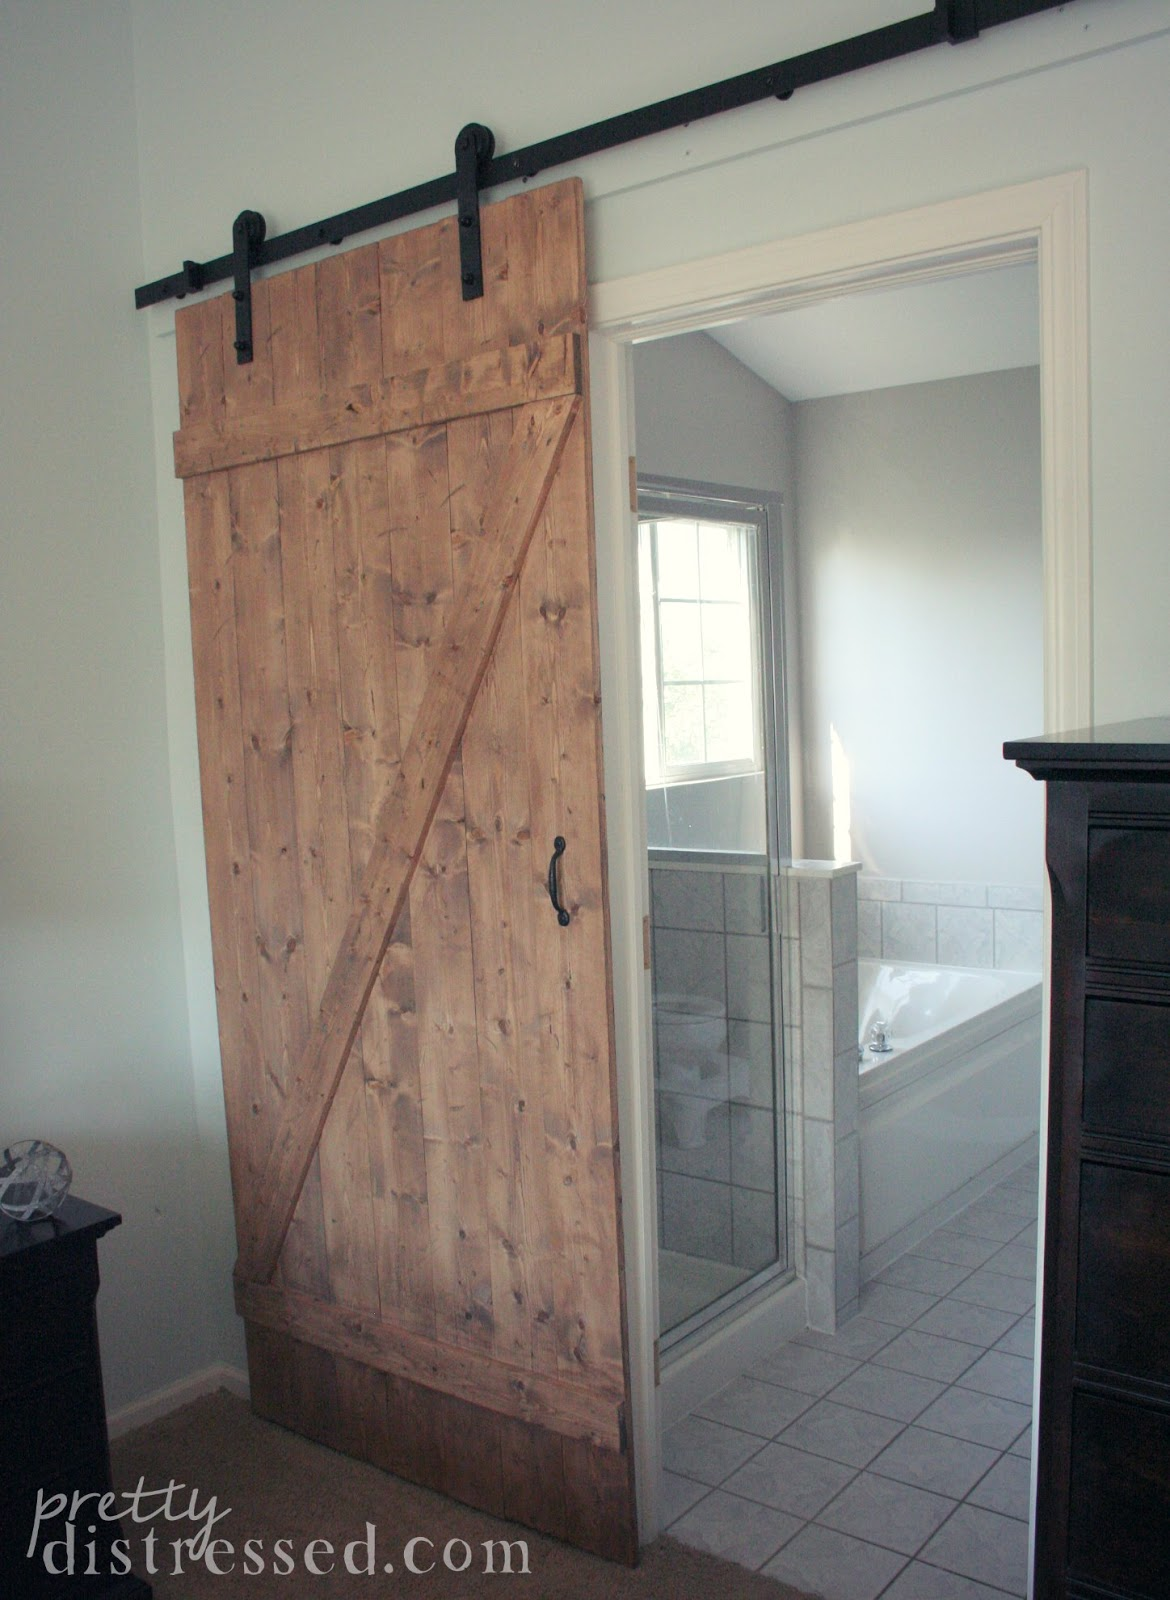 Pretty distressed diy distressed sliding barn door for Barn door designs